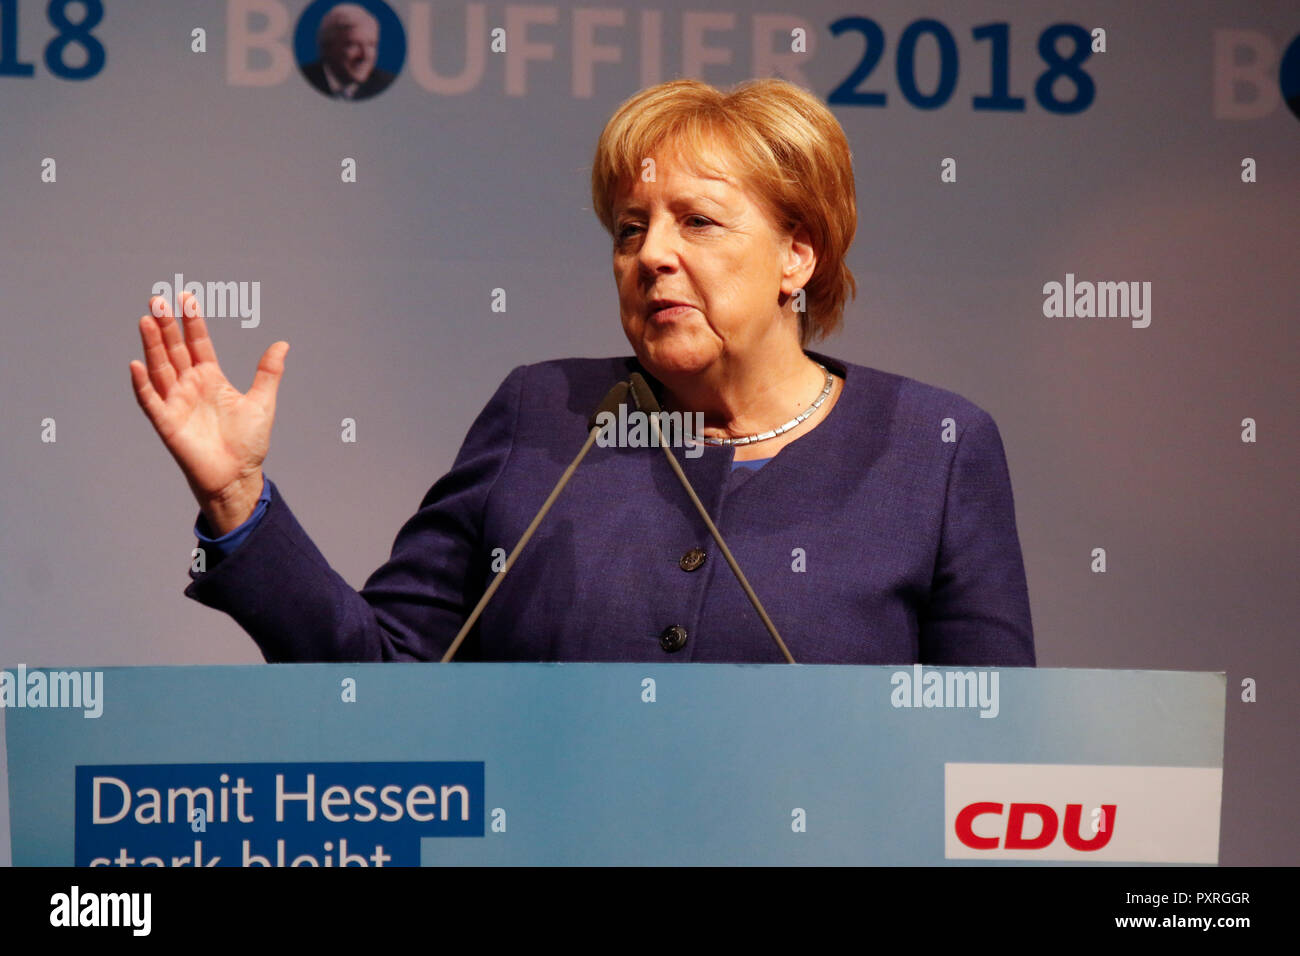 Dieburg, Germany. 23rd October 2018. Angela Merkel, the Chancellor of Germany, speaks at the election rally. German Chancellor Angela Merkel attended a political rally of her CDU party in Dieburg ahead of the upcoming state election in the German state of Hesse. Credit: Michael Debets/Alamy Live News - Stock Image